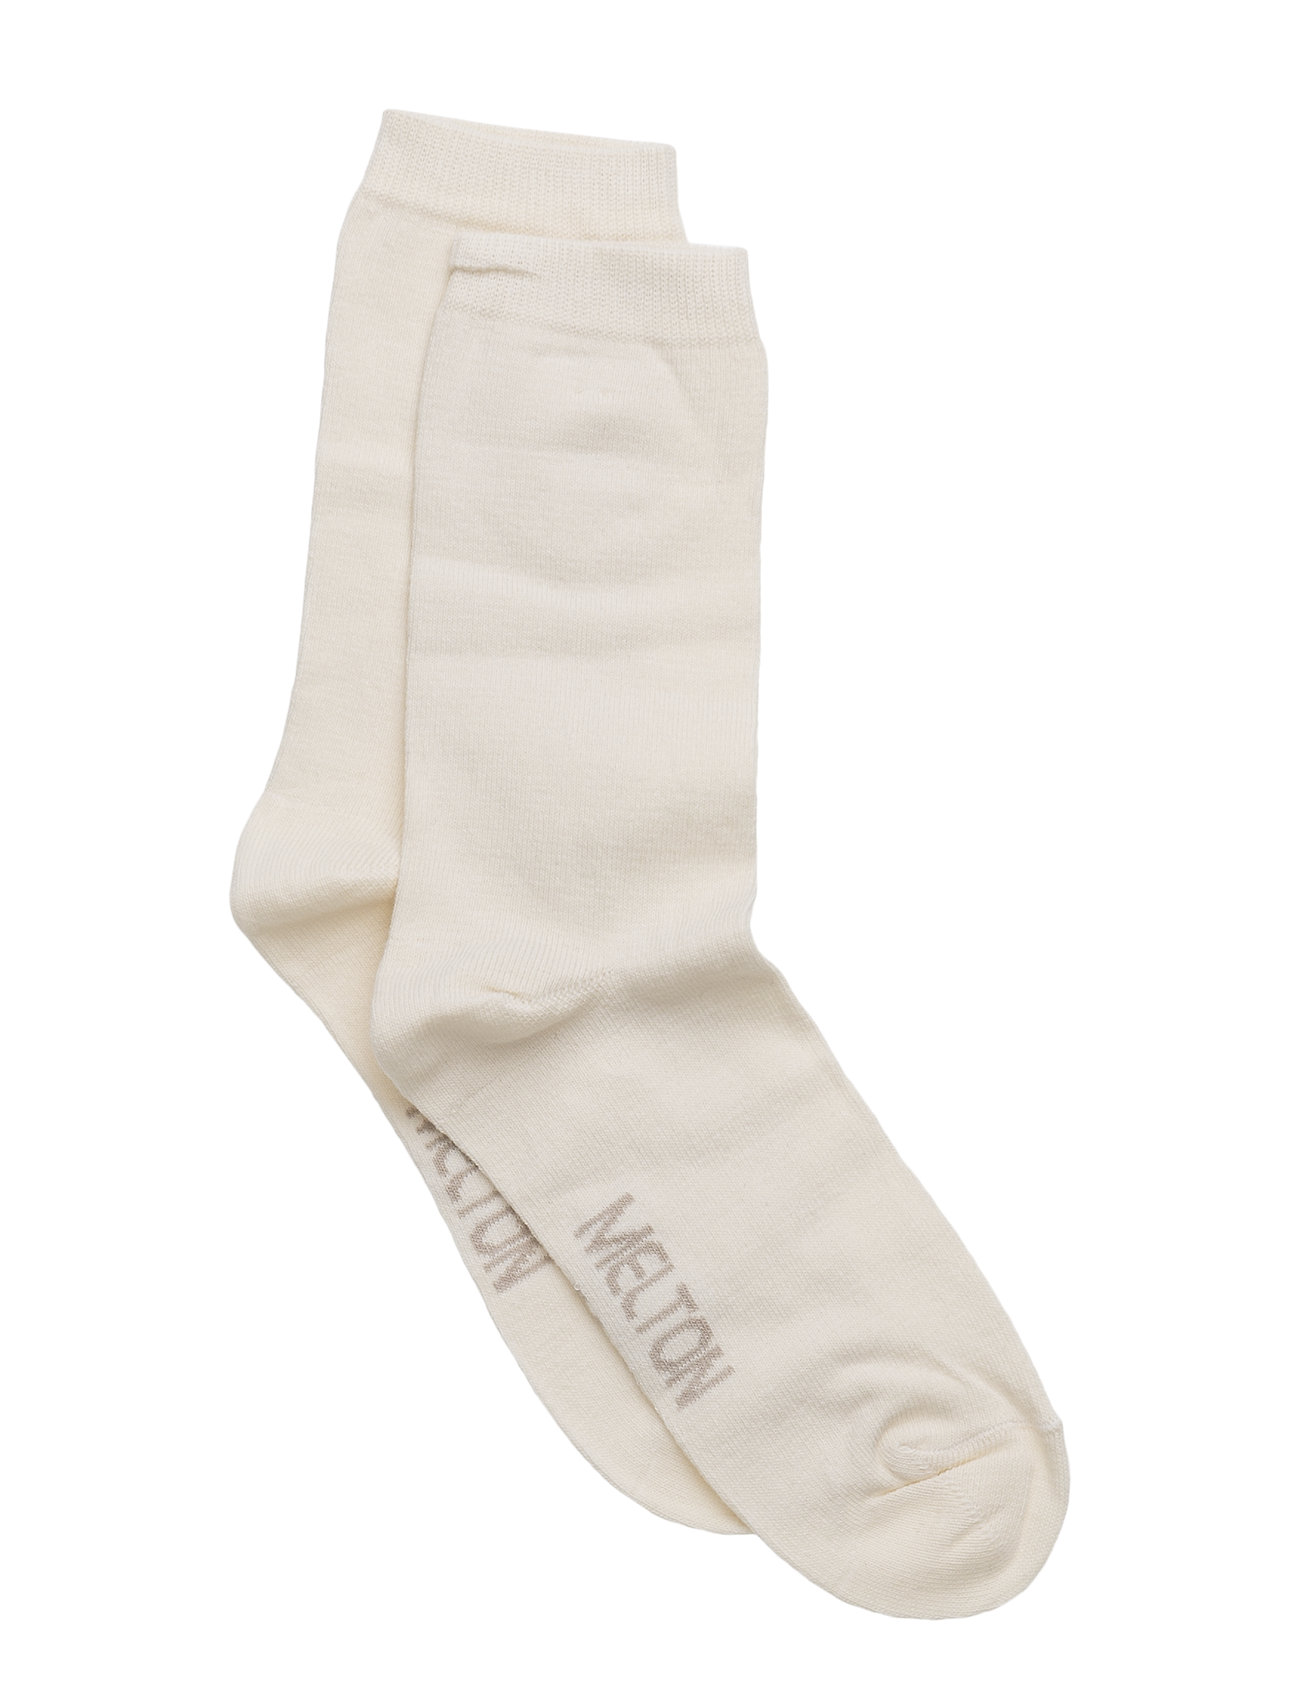 Melton Sock , plain colour - 410/OFFWHITE